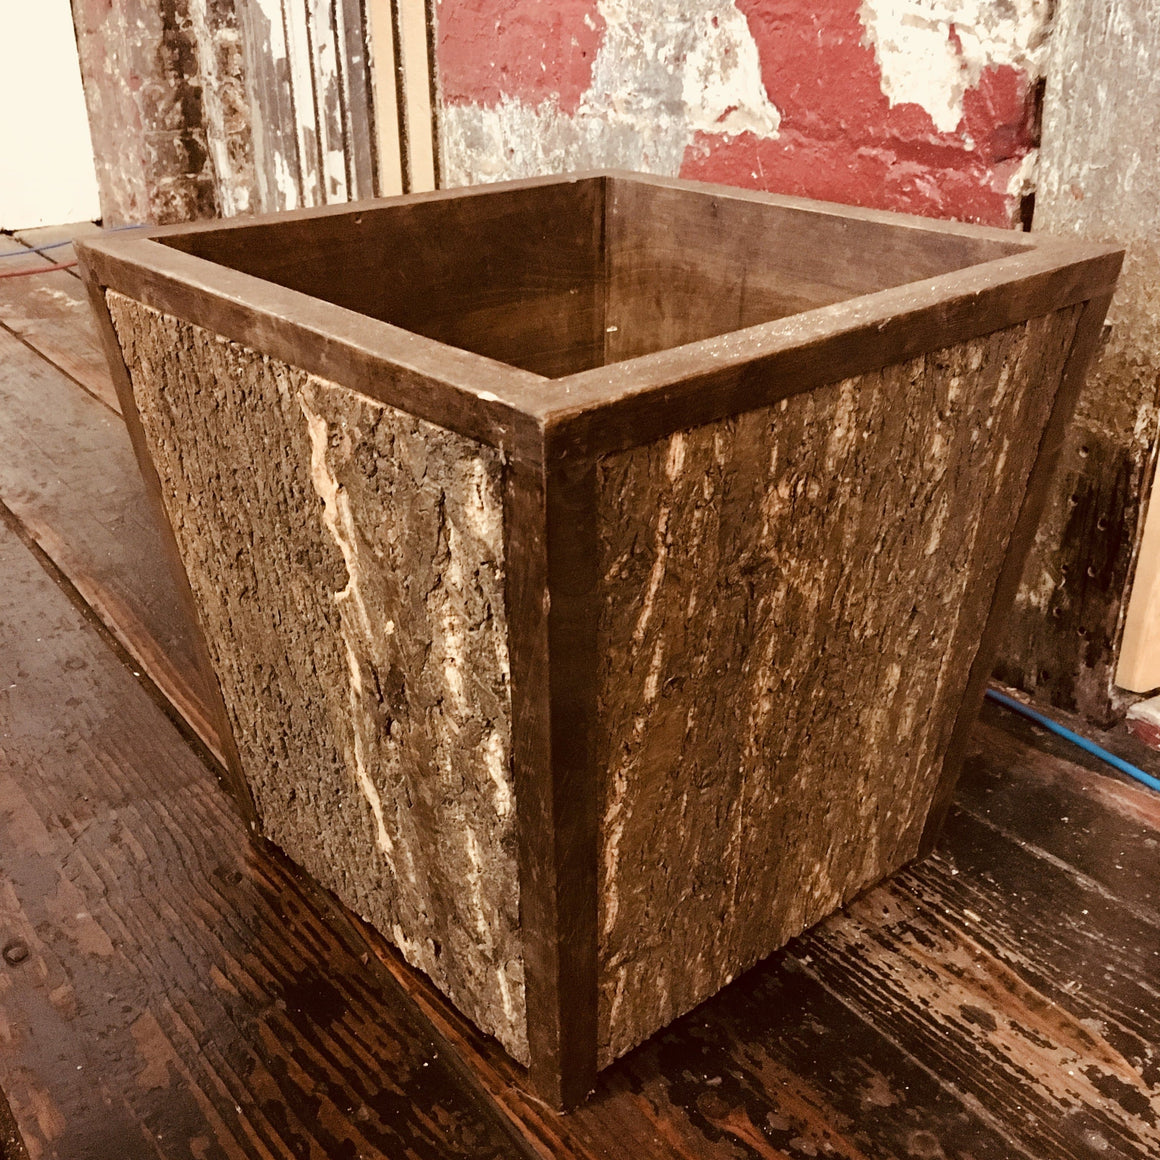 Wood Planter (Large) - Naturally Anti-Microbial Hypoallergenic Sustainable Eco-Friendly Cork